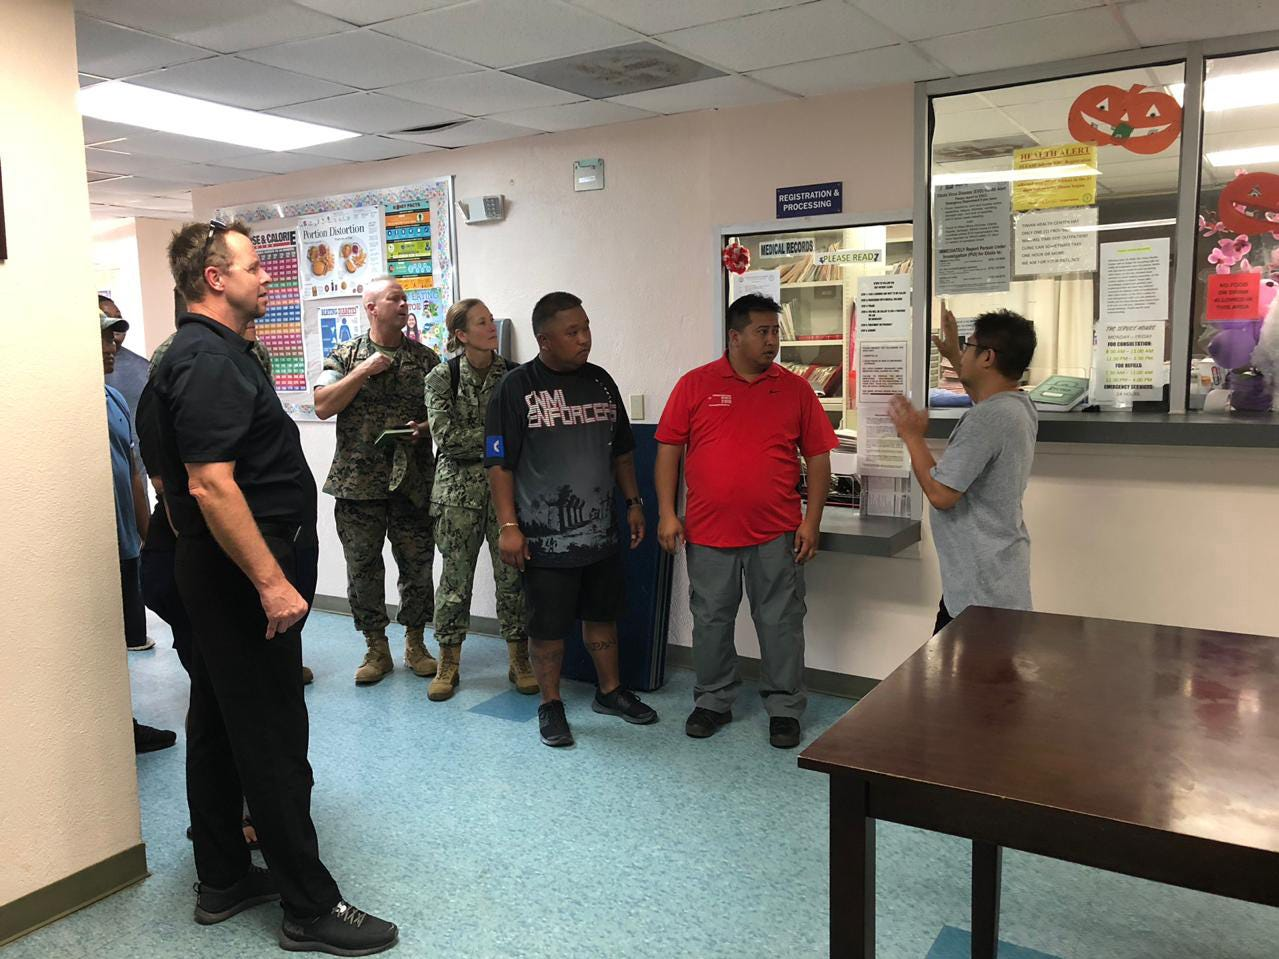 TINIAN, Commonwealth of the Northern Mariana Islands (Oct. 28, 2018) — Col. Brent Bien, Marine Corps Activity Guam officer in charge; Rear Adm. Shoshana Chatfield, Commander, Joint Region Marianas/Commander, Task Force West; officials from the Federal Emergency Management Agency, and local authorities visit a healthcare facility in Tinian to assess damage and discuss ongoing recovery efforts following Super Typhoon Yutu Oct. 28. Service members from Joint Region Marianas and Indo-Pacific Command are providing Department of Defense support to the CNMI's civil and local officials as part of the FEMA-supported Super Typhoon Yutu recovery effort.